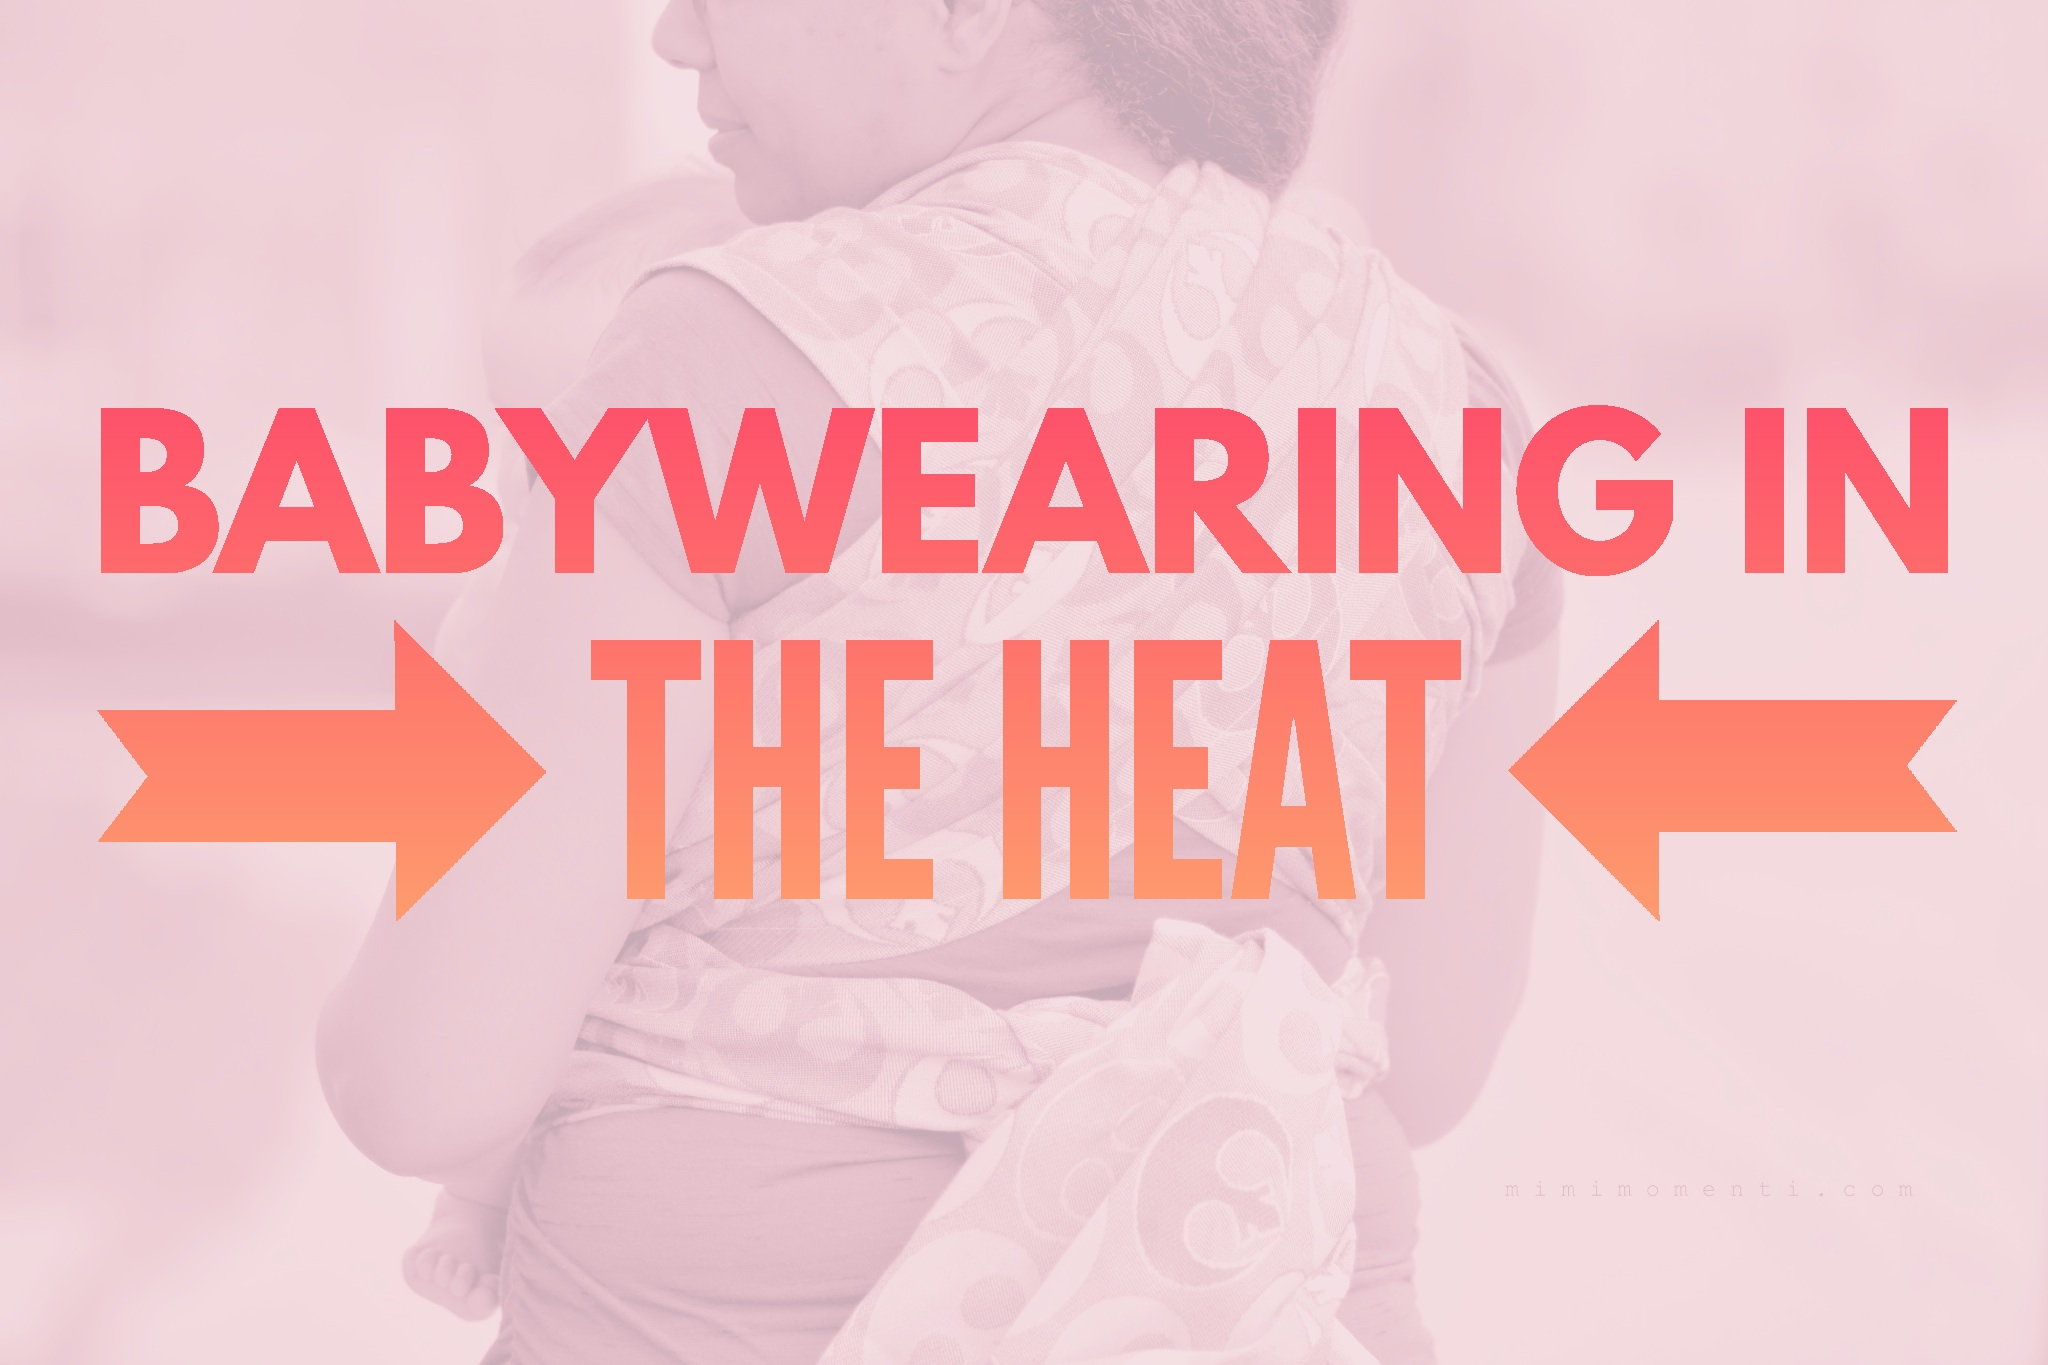 Babywearing in the Heat